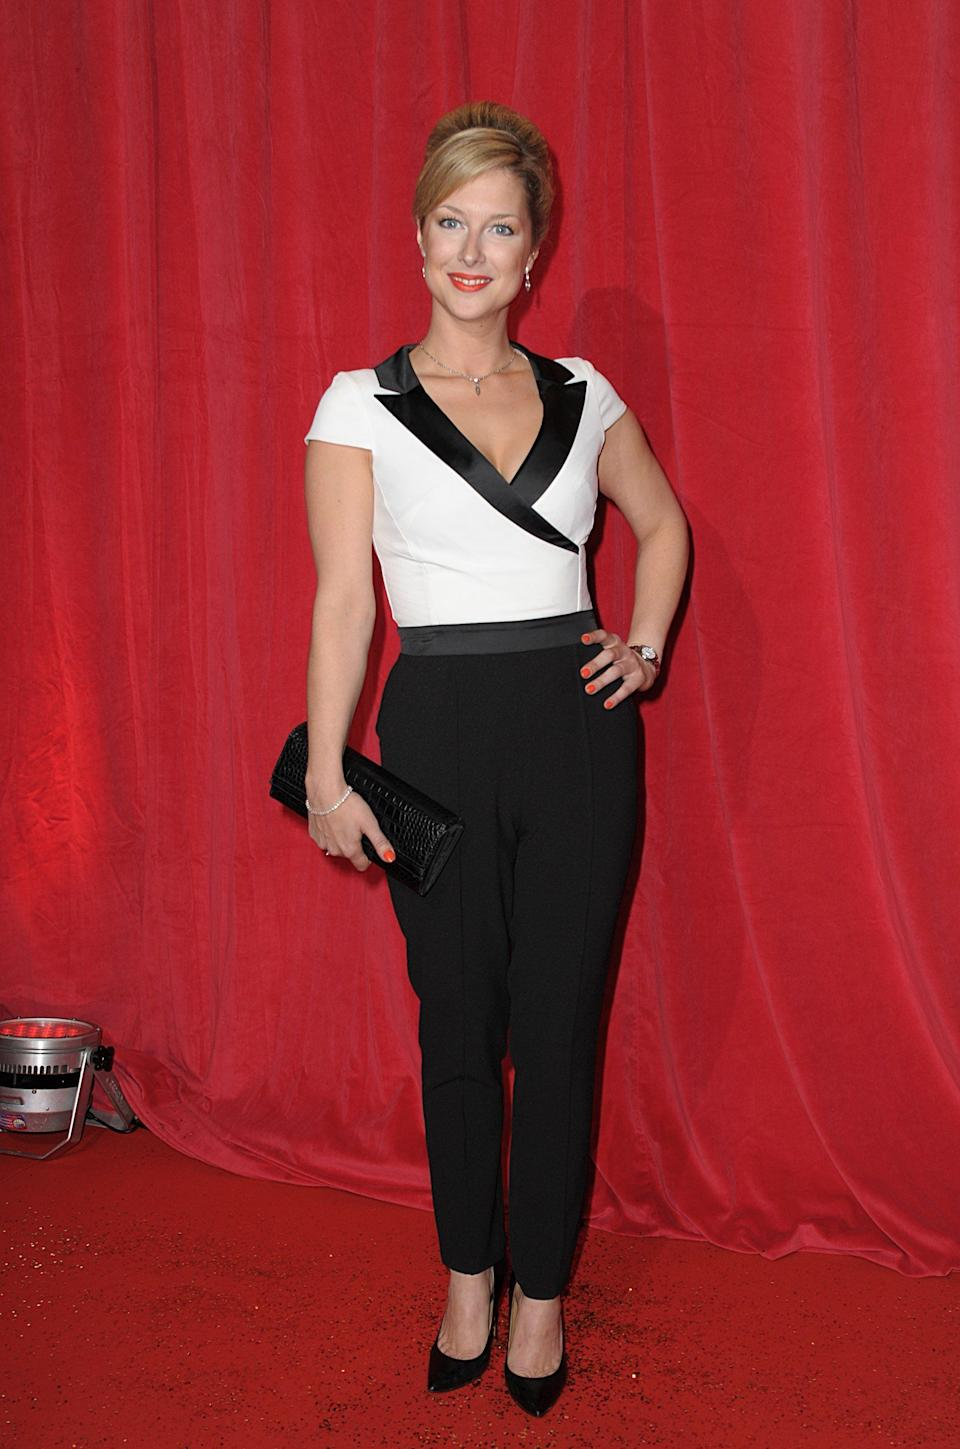 Gemma Bissix won plenty of awards as Hollyoaks' Claire, before channel-hopping across to 'EastEnders' to play a character with the same first name.